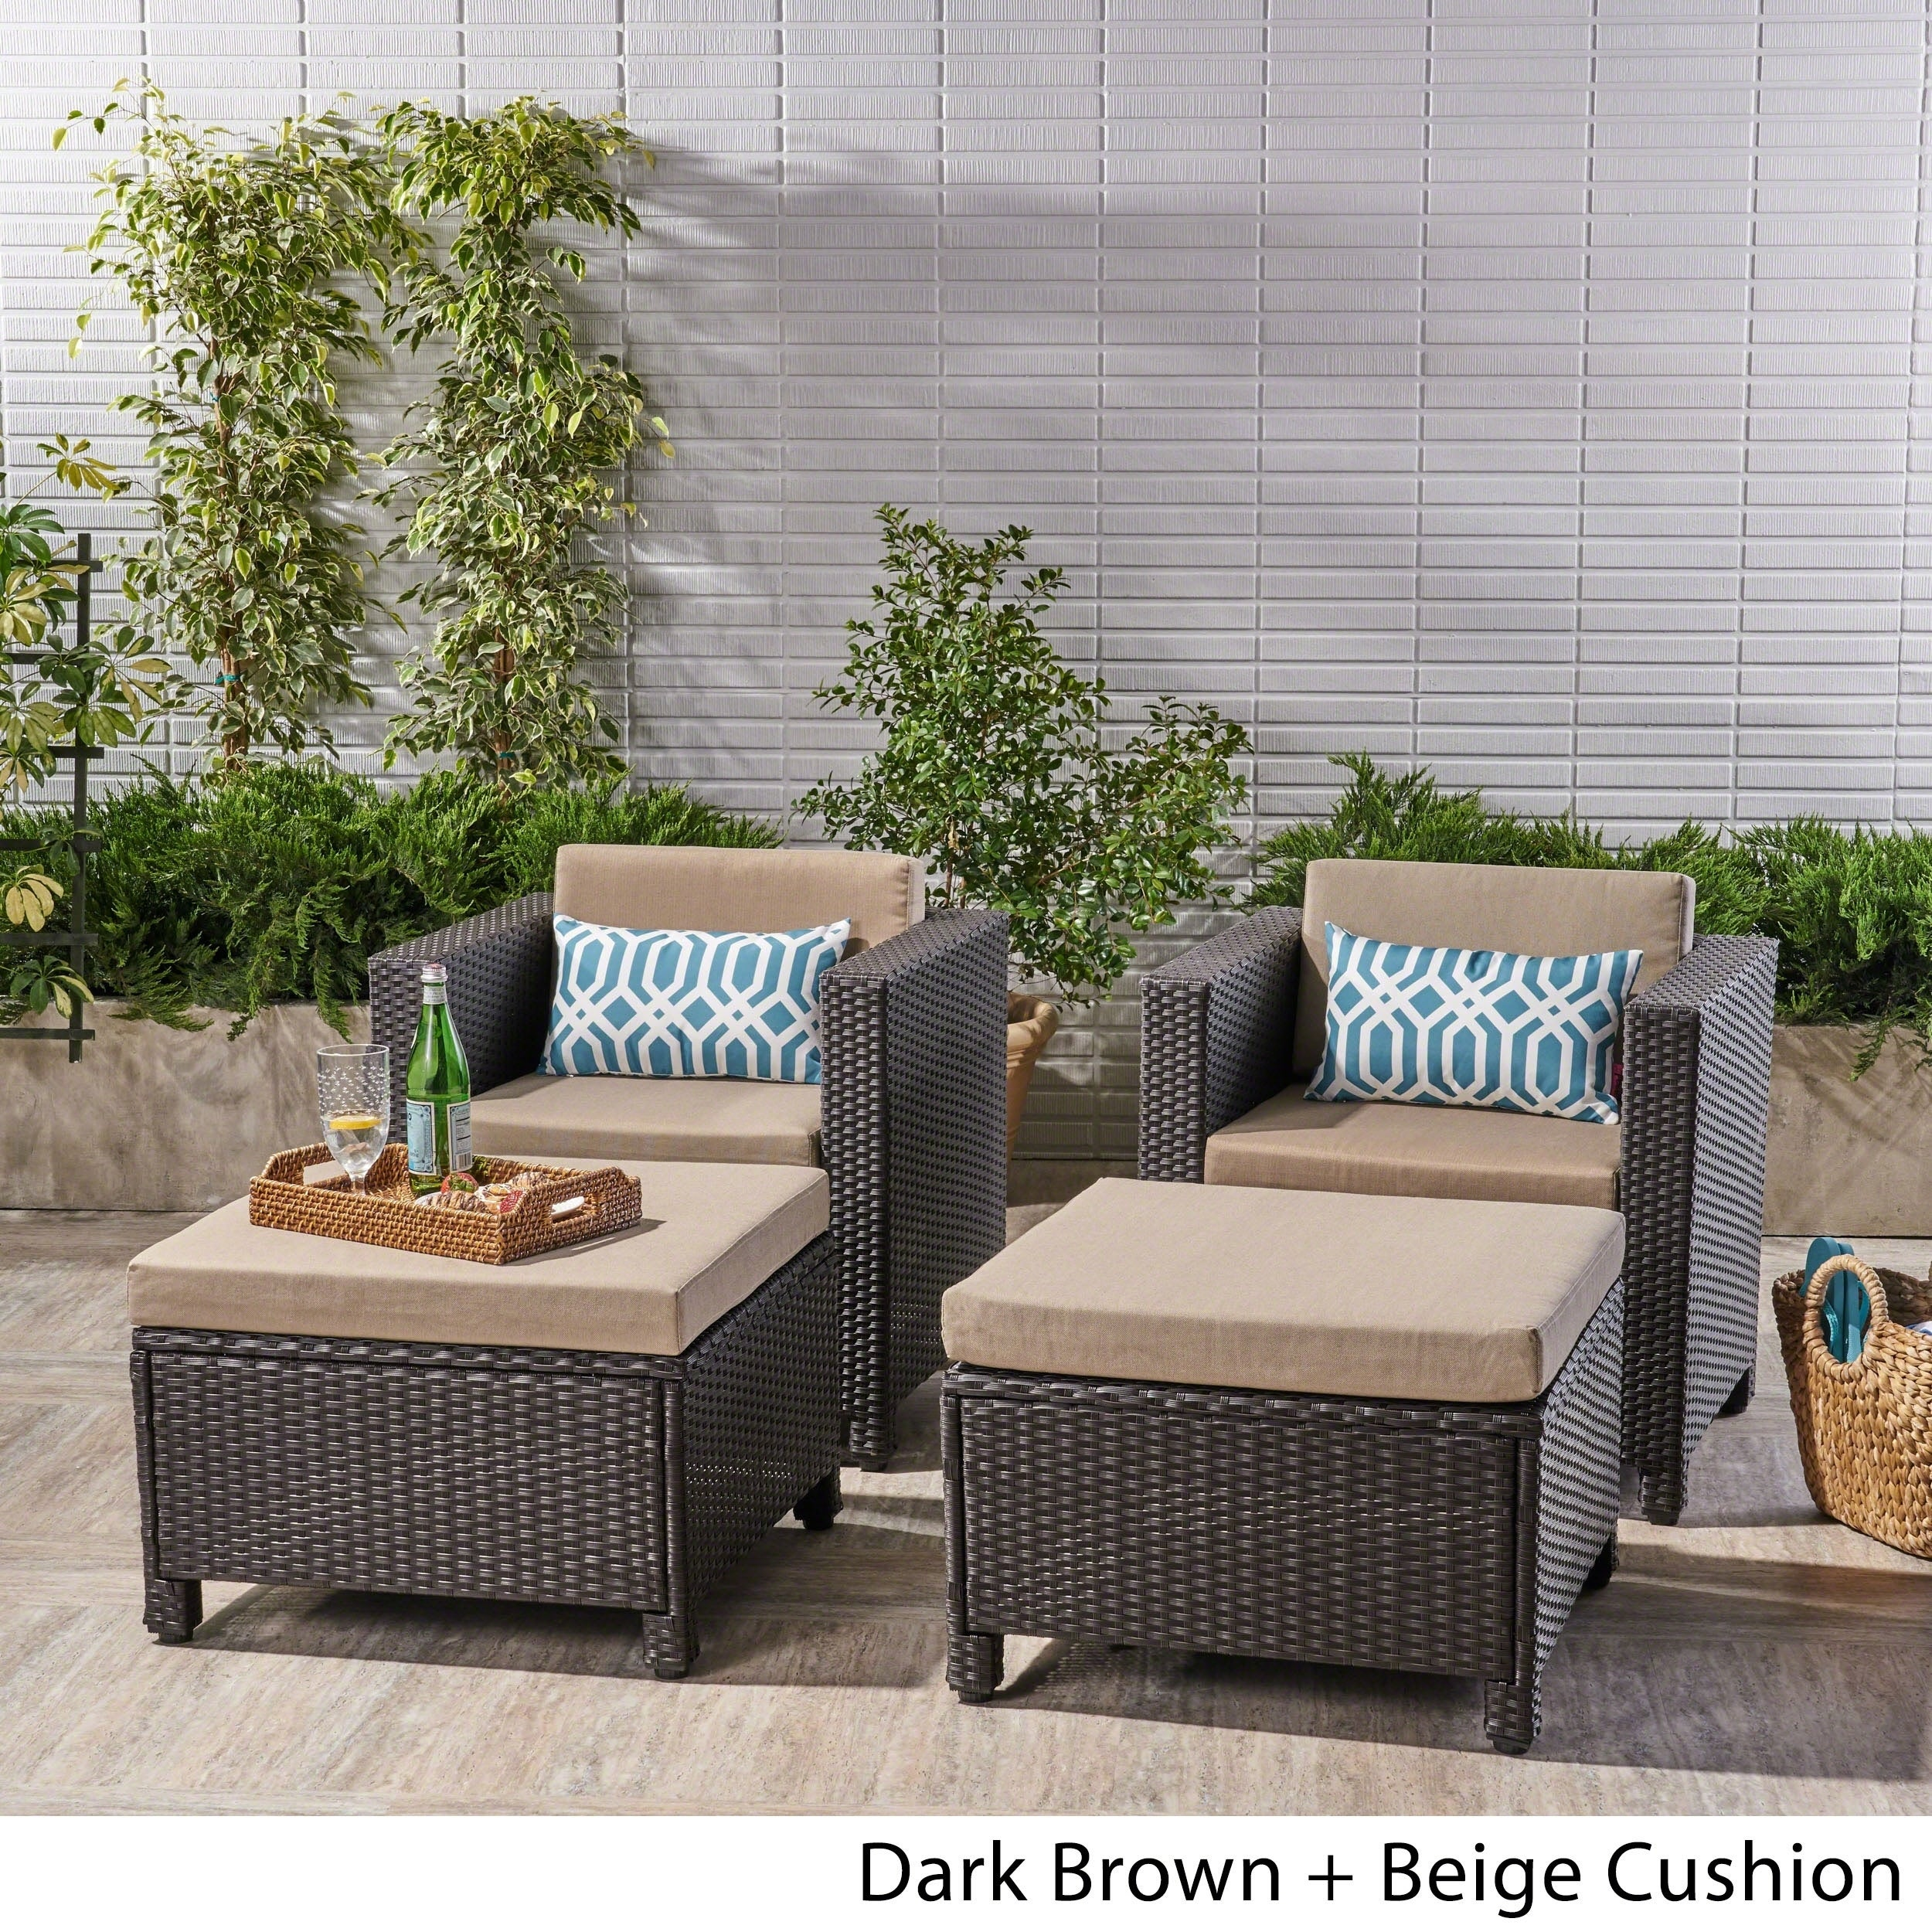 Puerta Outdoor 4 Piece Wicker Club Chair And Ottoman Set By Chirstopher Knight Home Overstock 21957574